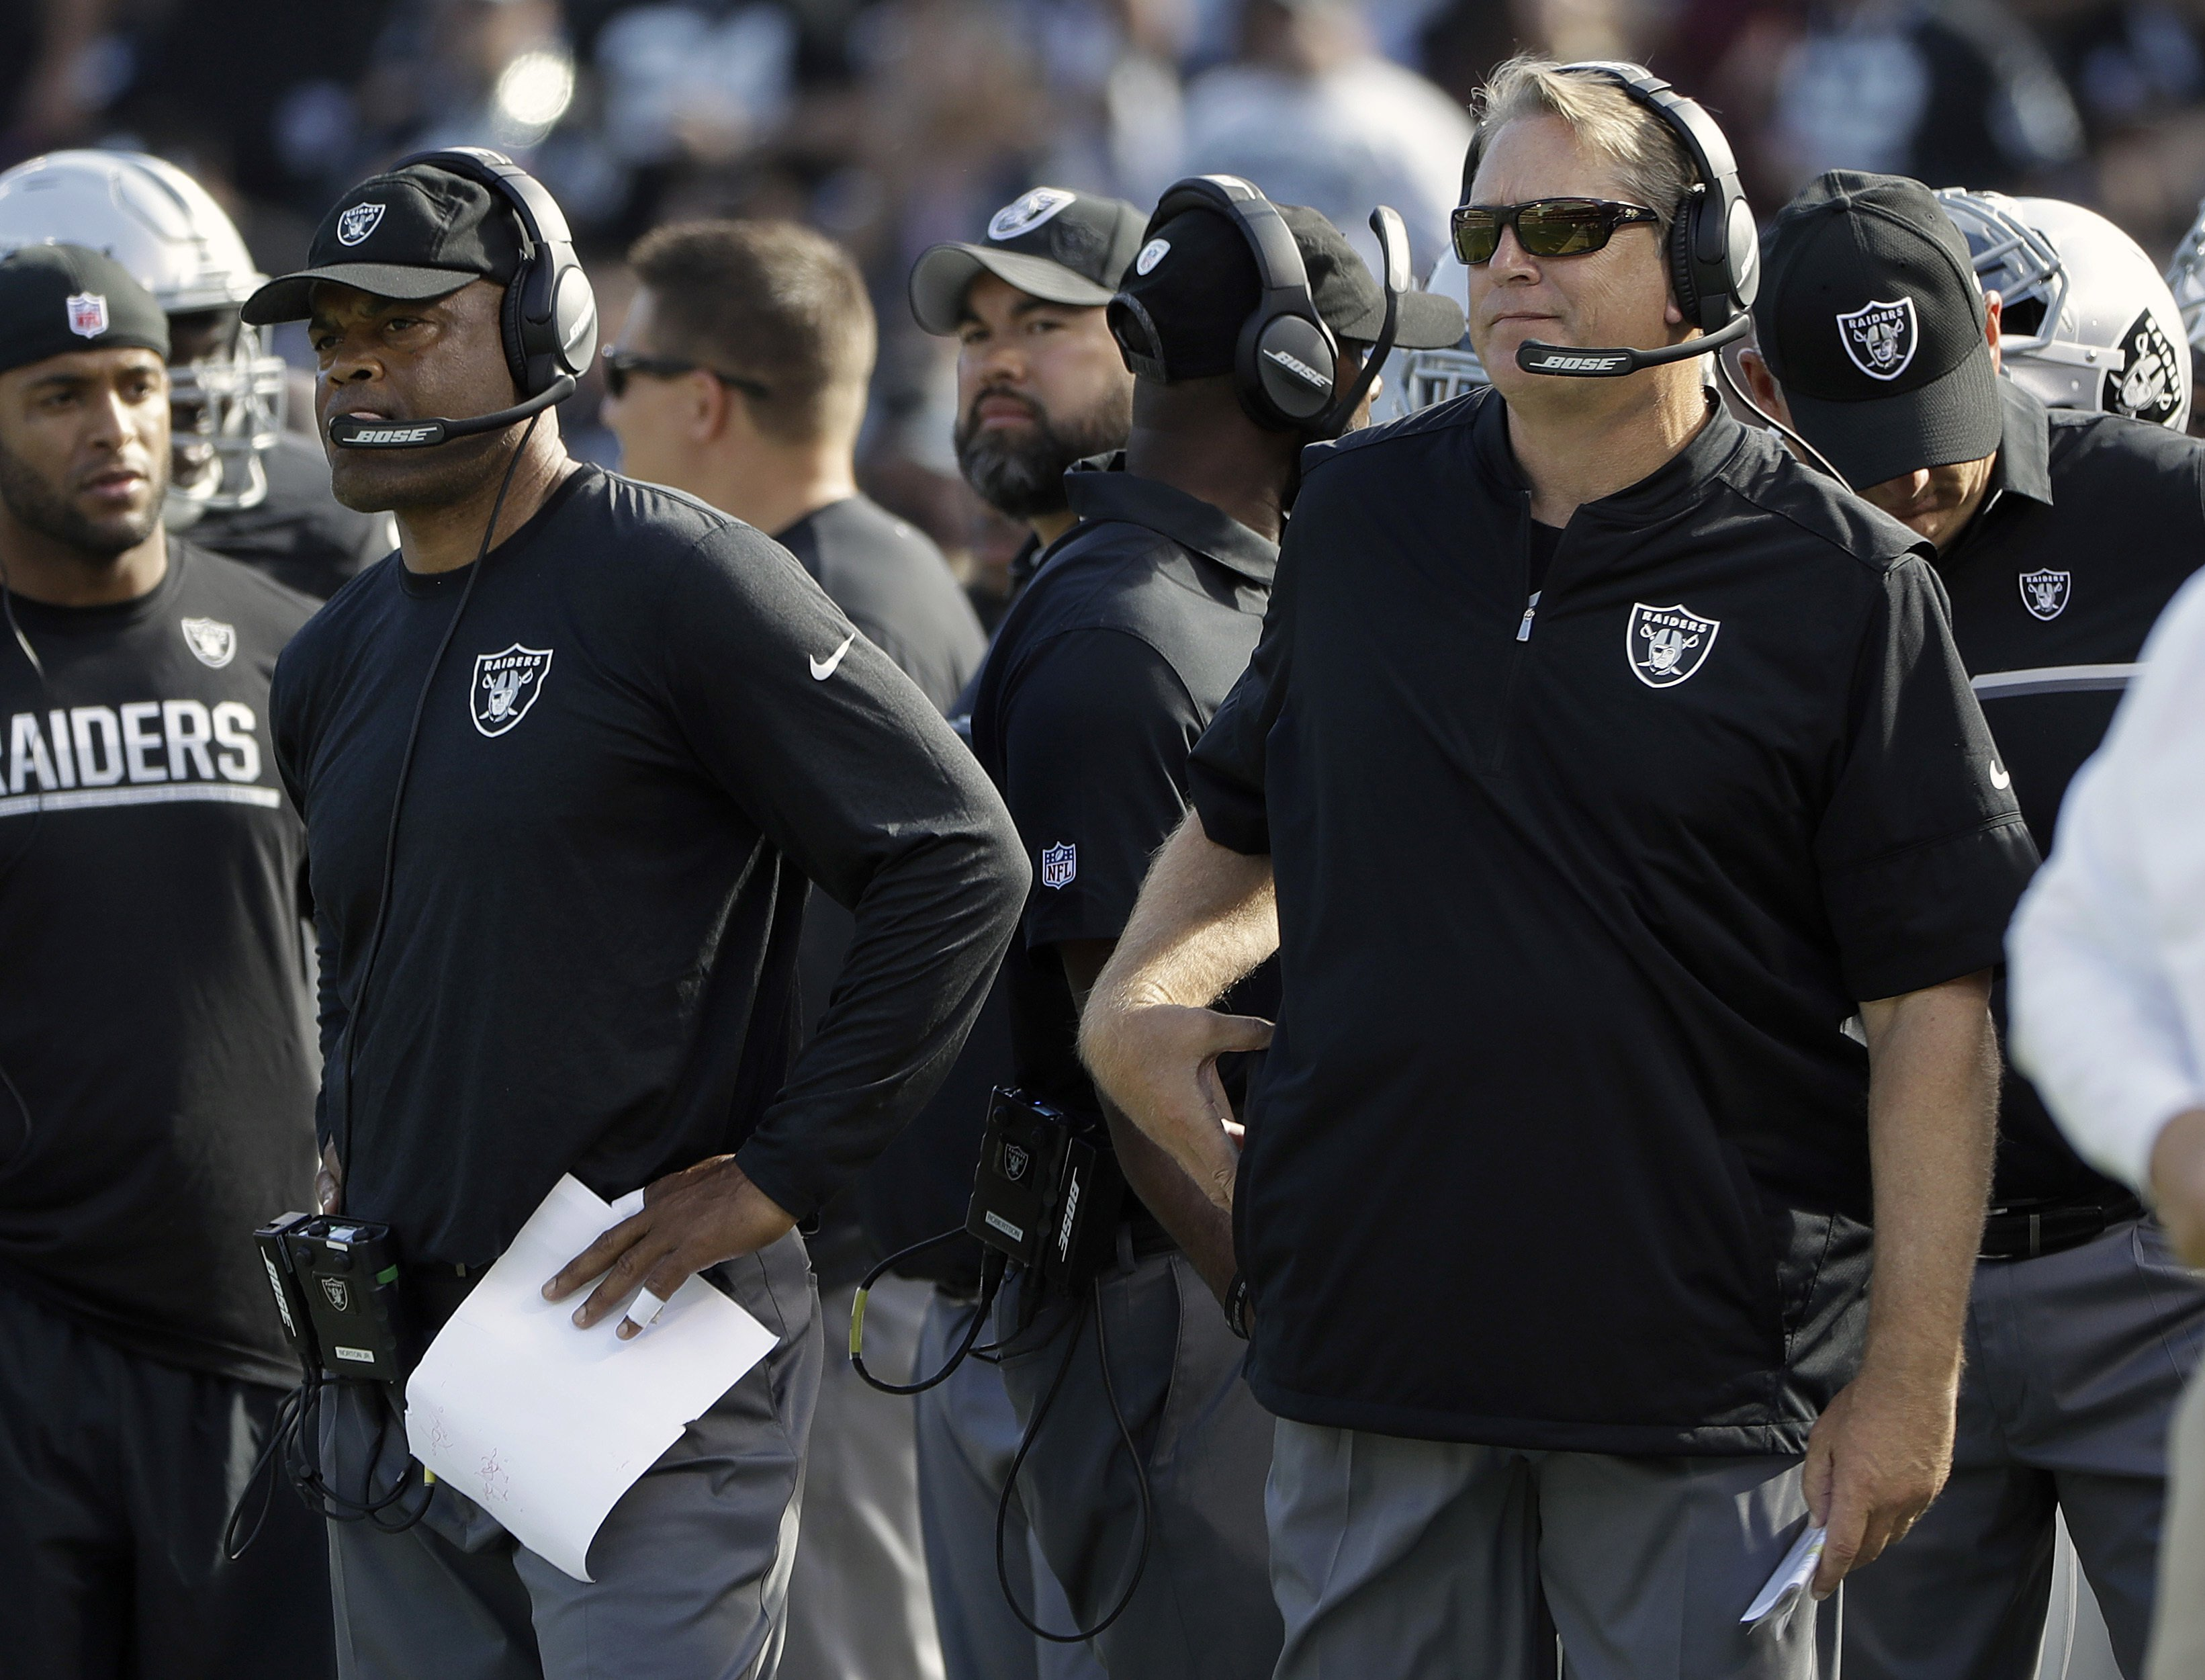 Raiders fire defensive coordinator Ken Norton Jr. after rough outing vs. Patriots